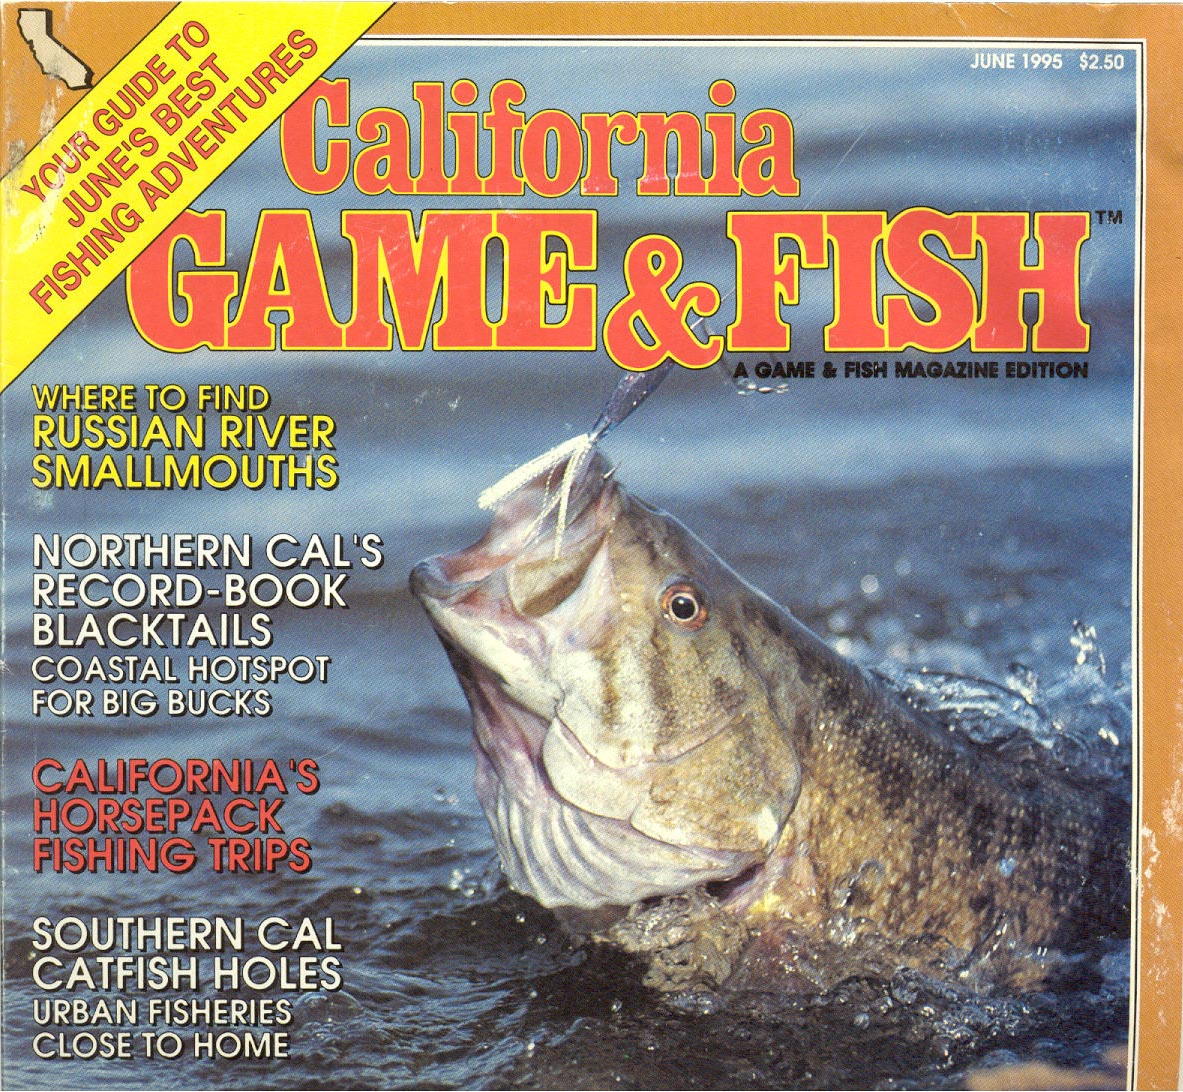 Mike swaney fishing guide northern california fishing guide for California fishing game